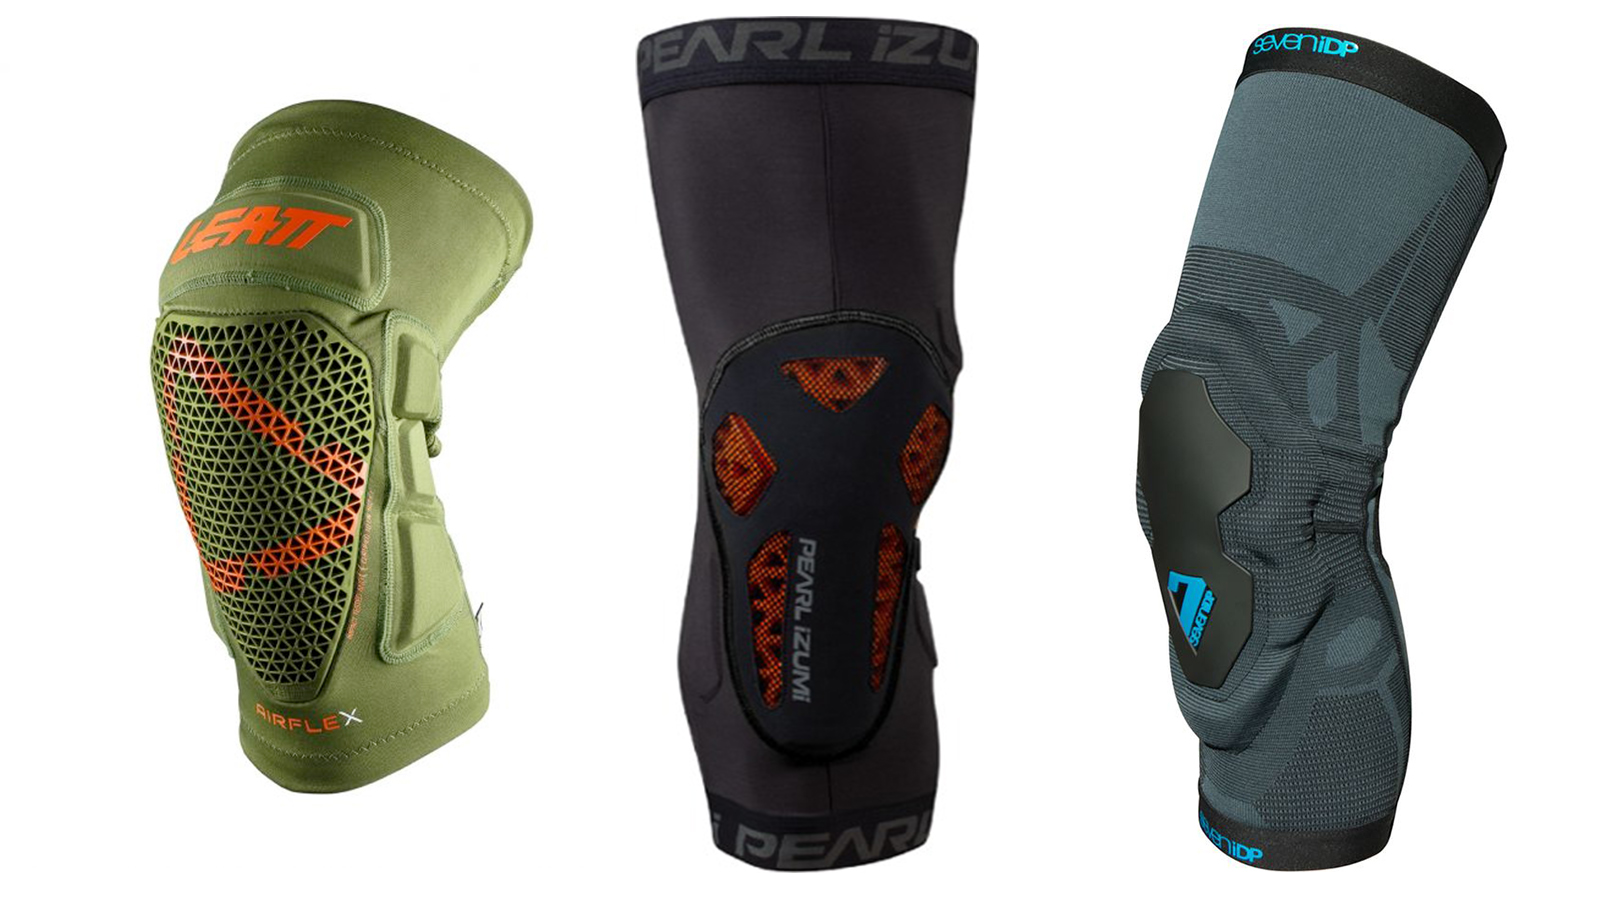 The best mtb kneepads will protect you from impacts without getting in the way of pedaling performance.